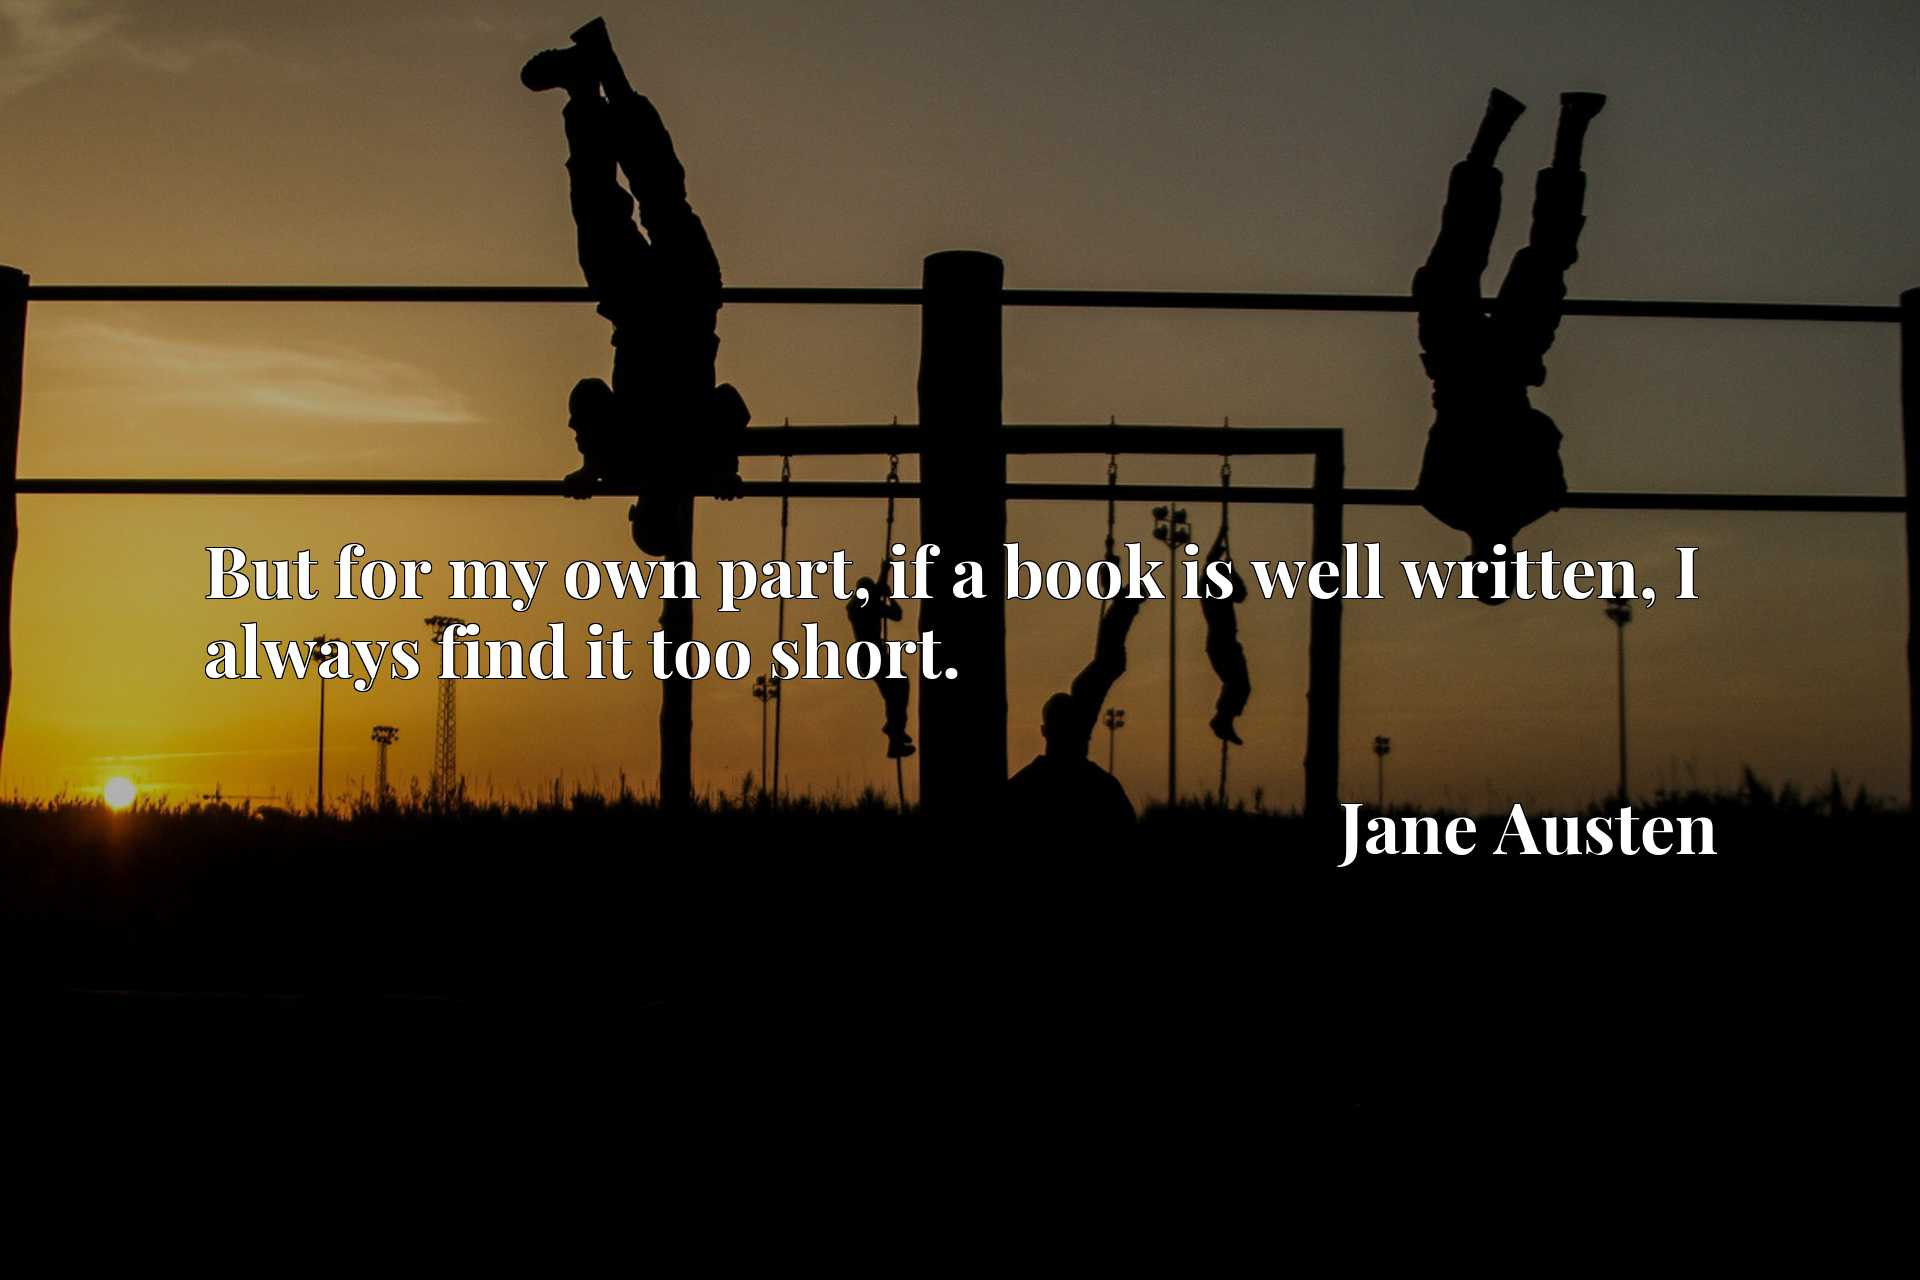 Quote Picture :But for my own part, if a book is well written, I always find it too short.